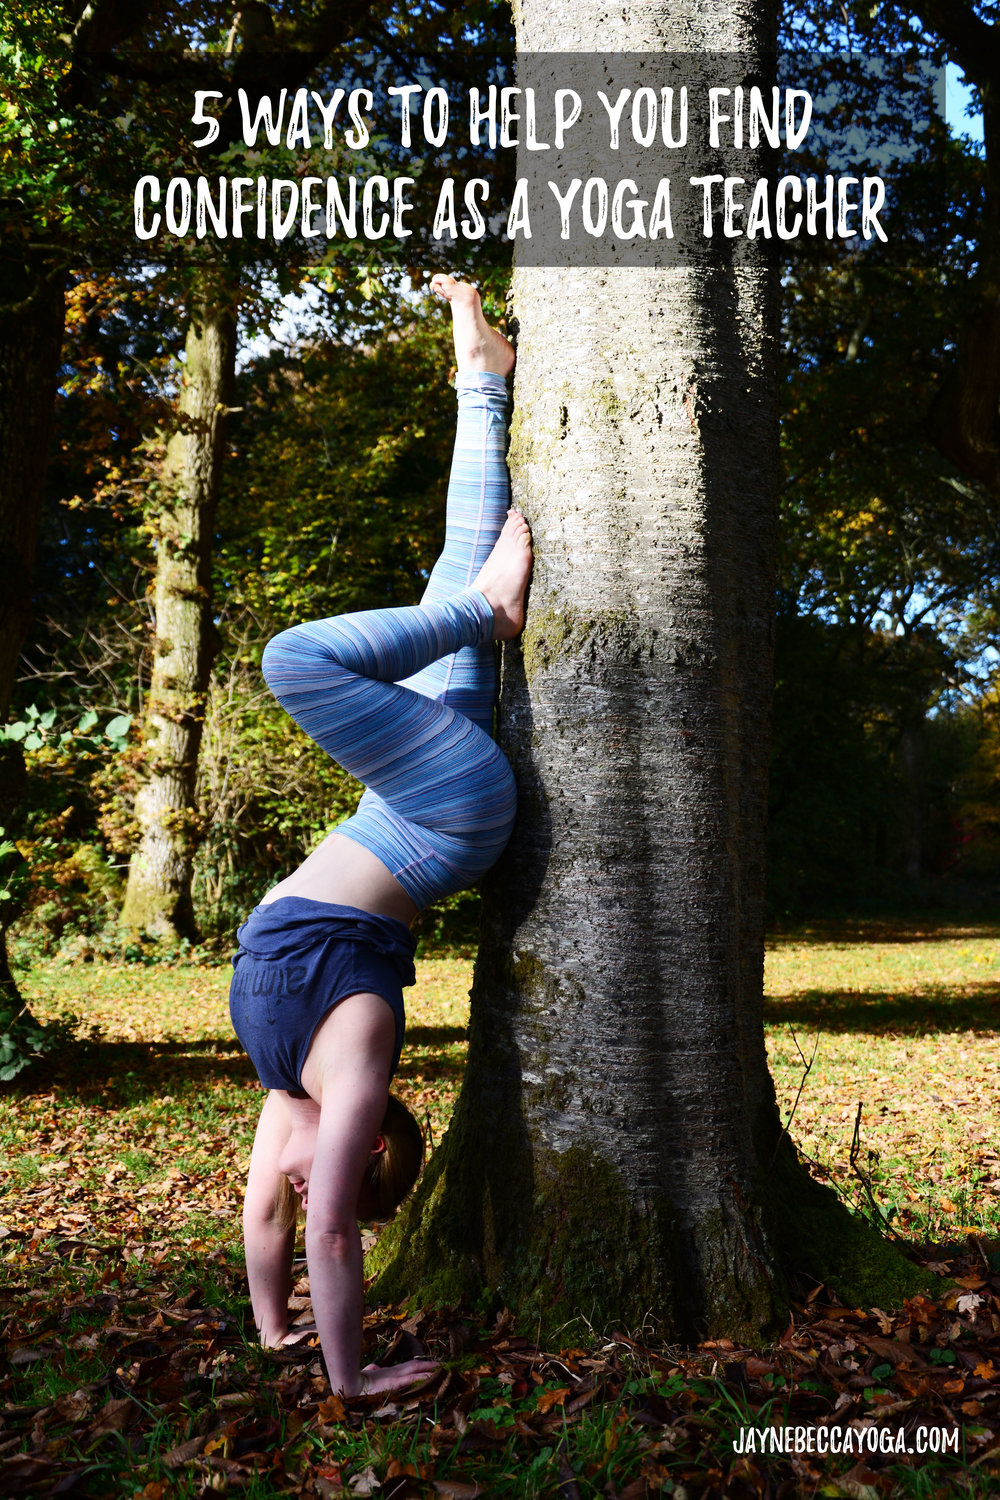 Pin It!5 Ways to Help You Find Confidence as a Yoga Teacher - Jayne Becca Yoga